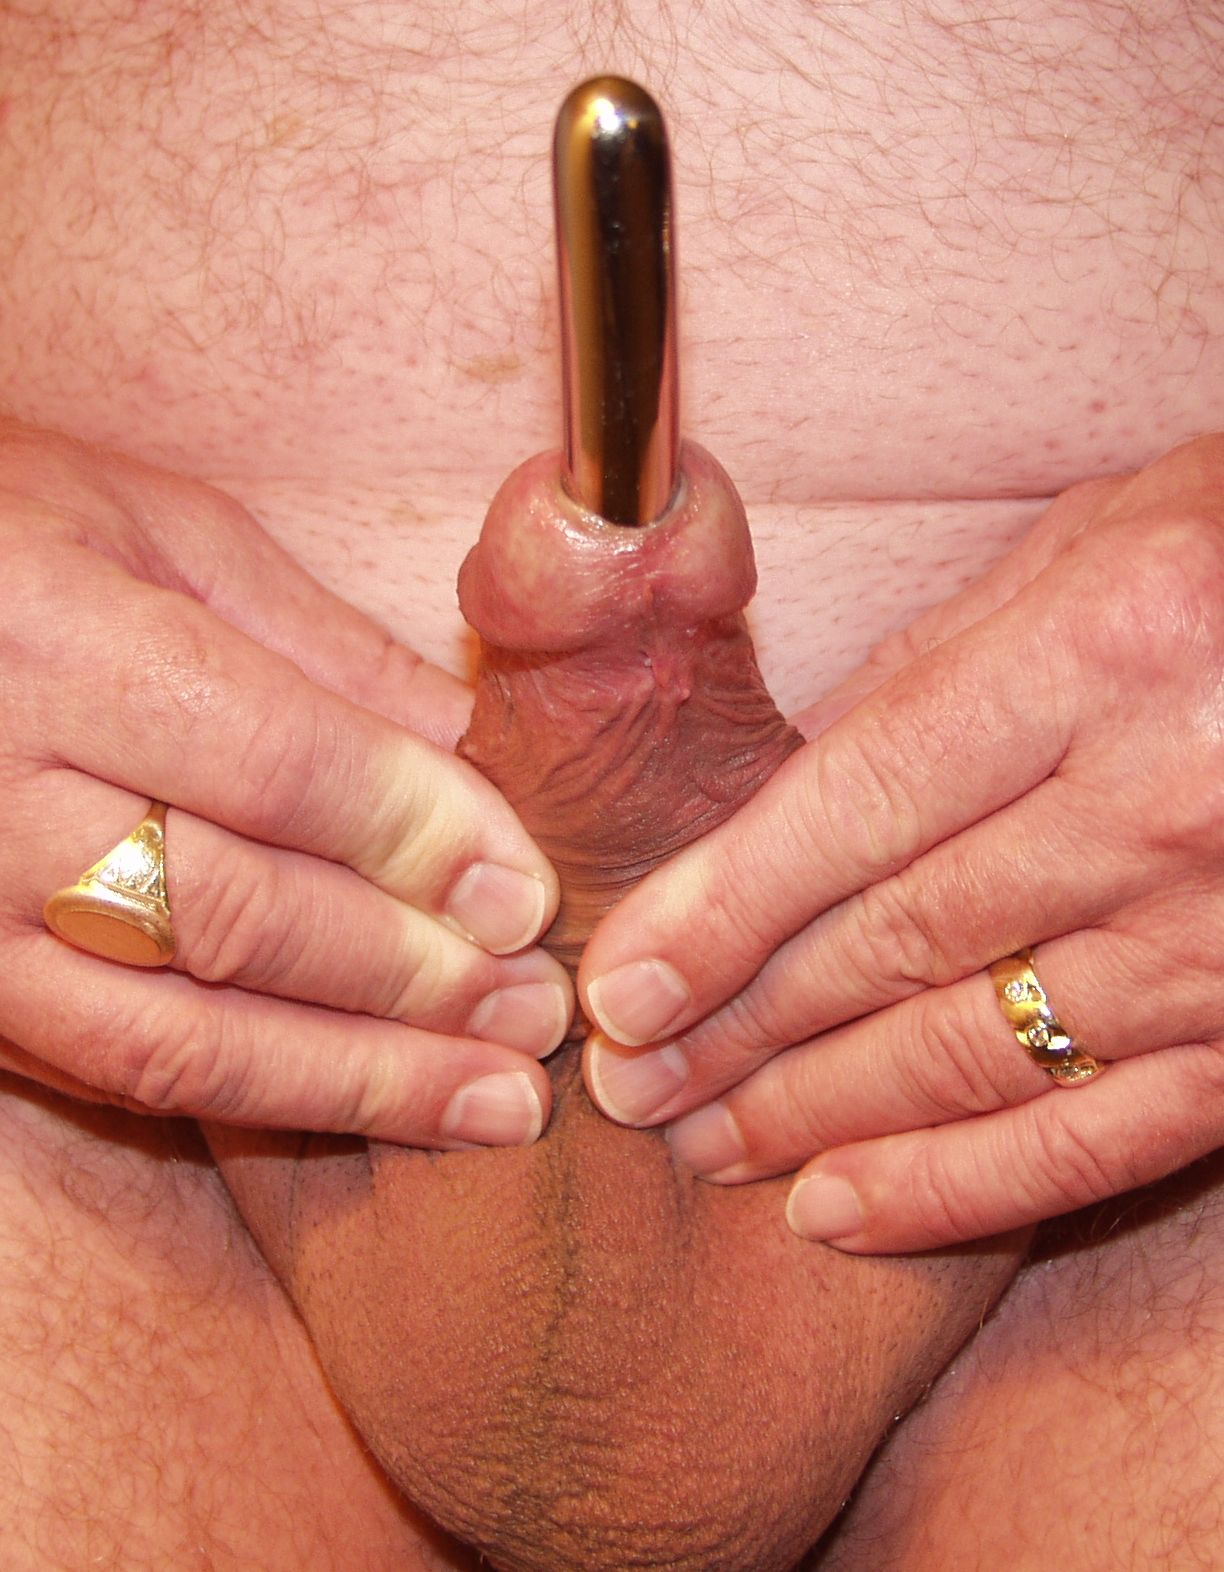 extreme penis insertions